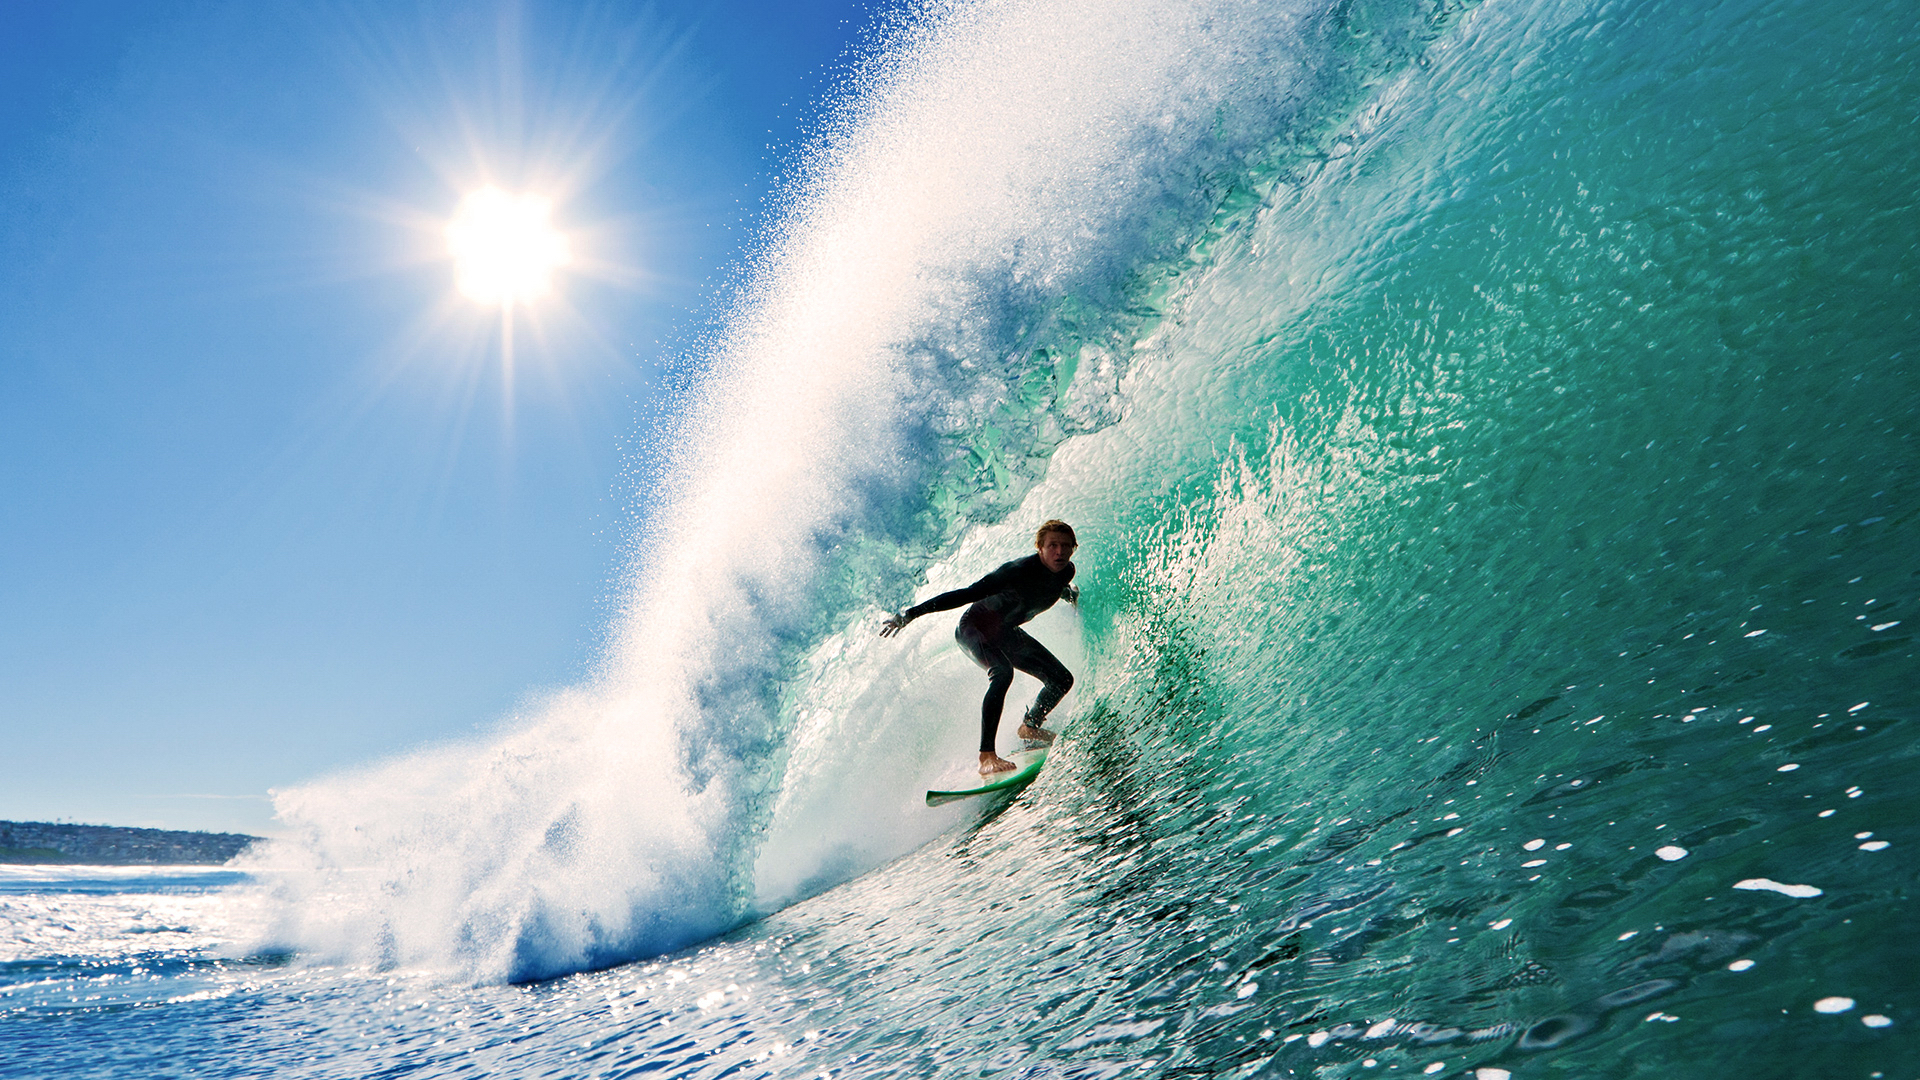 surf surfing top image surf water surfing picture surfer sport best 1920x1080